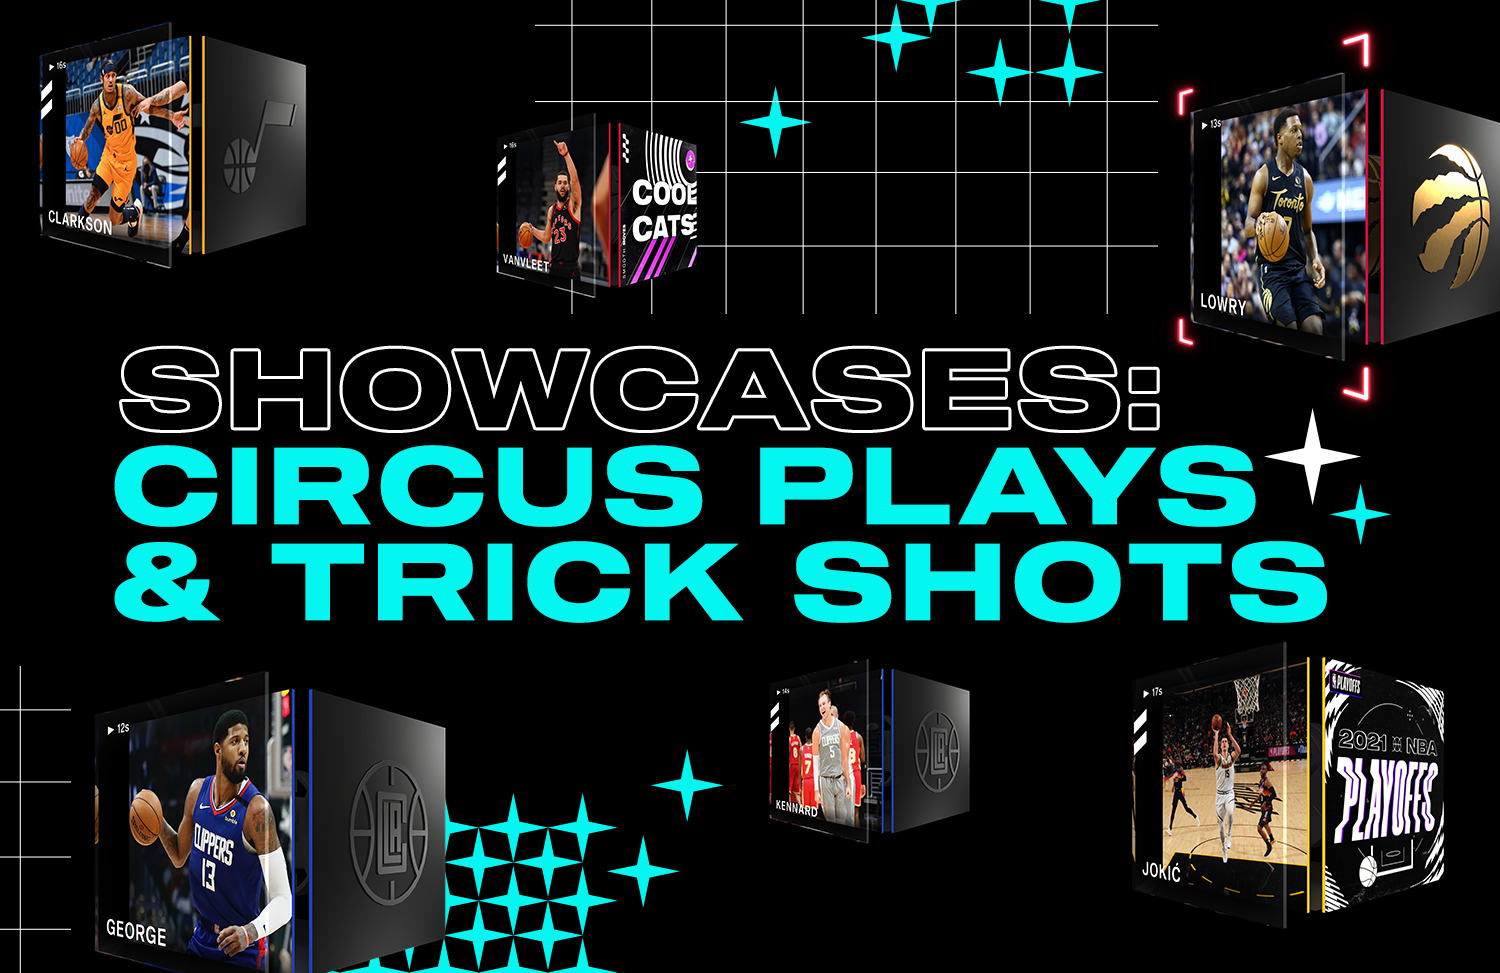 Re-living some of the top circus plays and trick shots from NBA Top Shot Moments